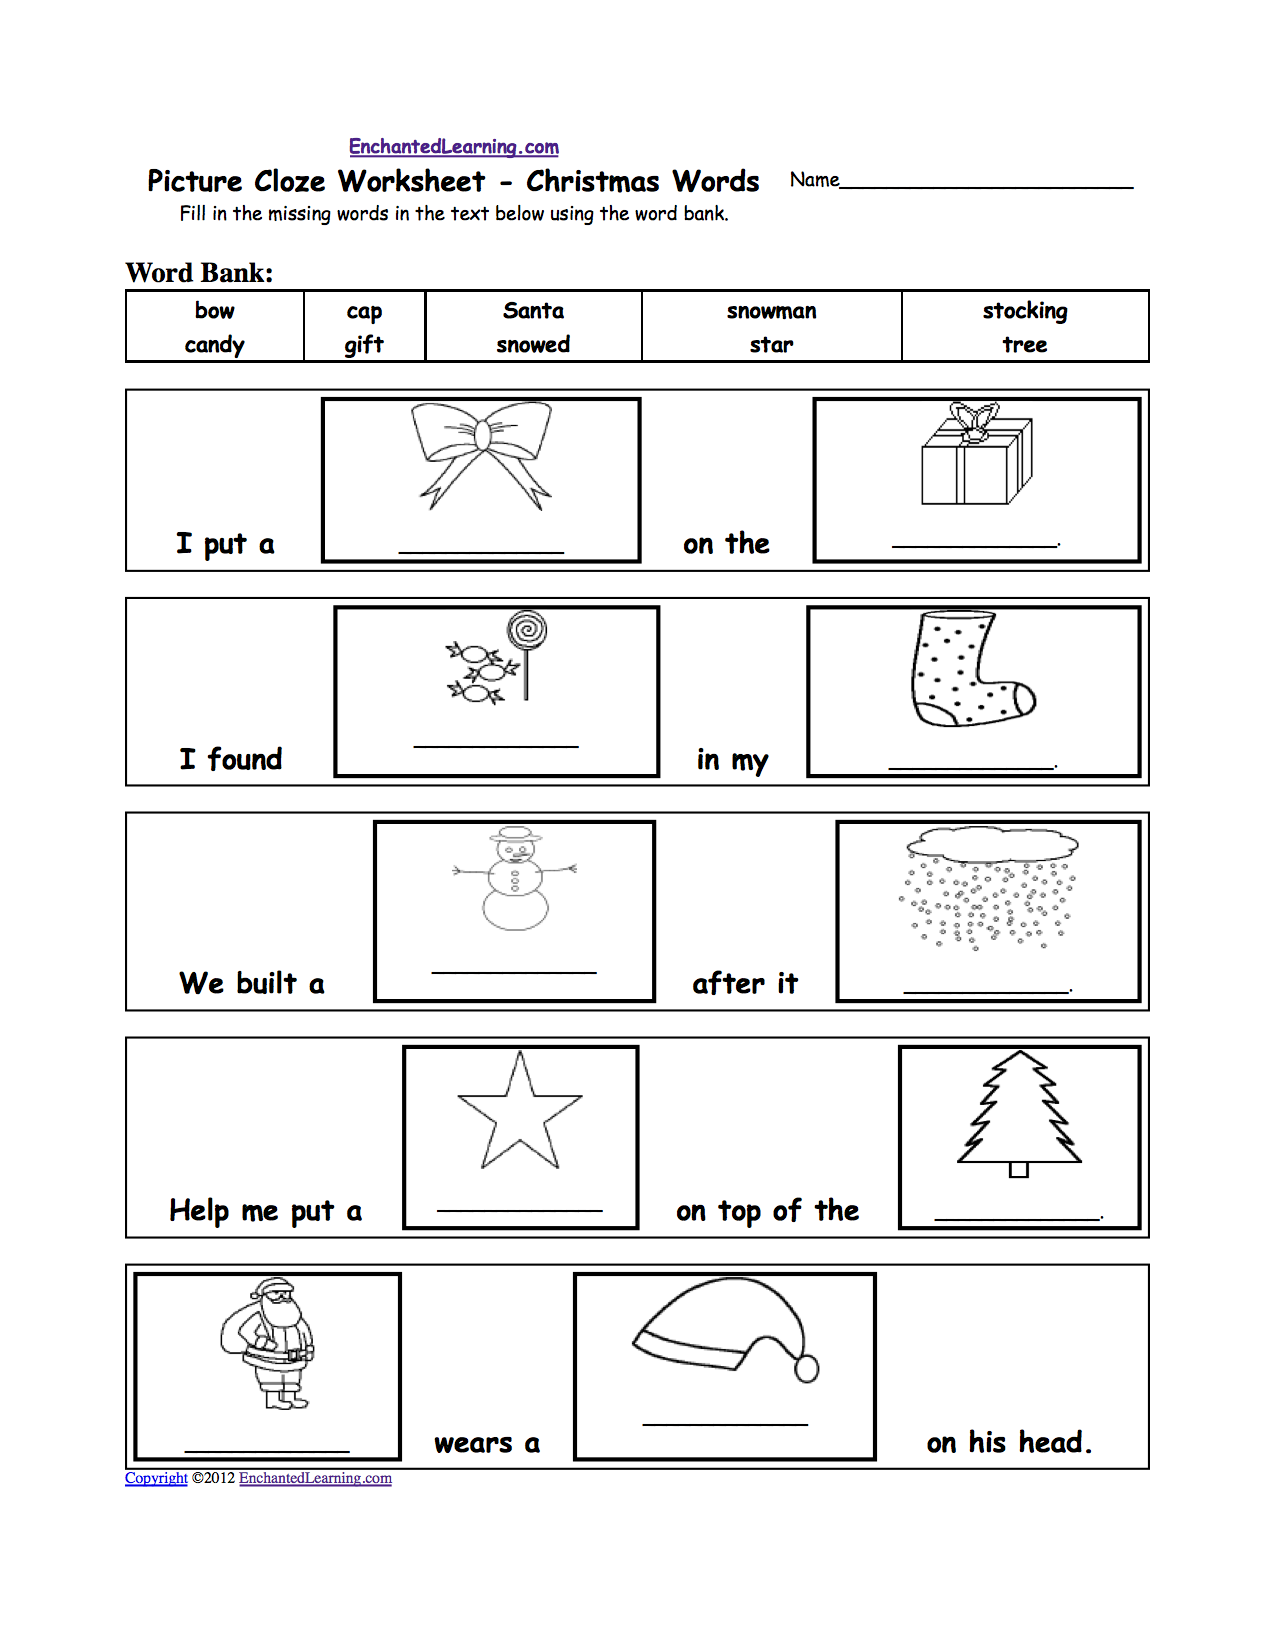 worksheet Christmas Worksheets For Preschool christmas crafts for kids enchantedlearning com or go to the answers cloze picture words printable worksheet